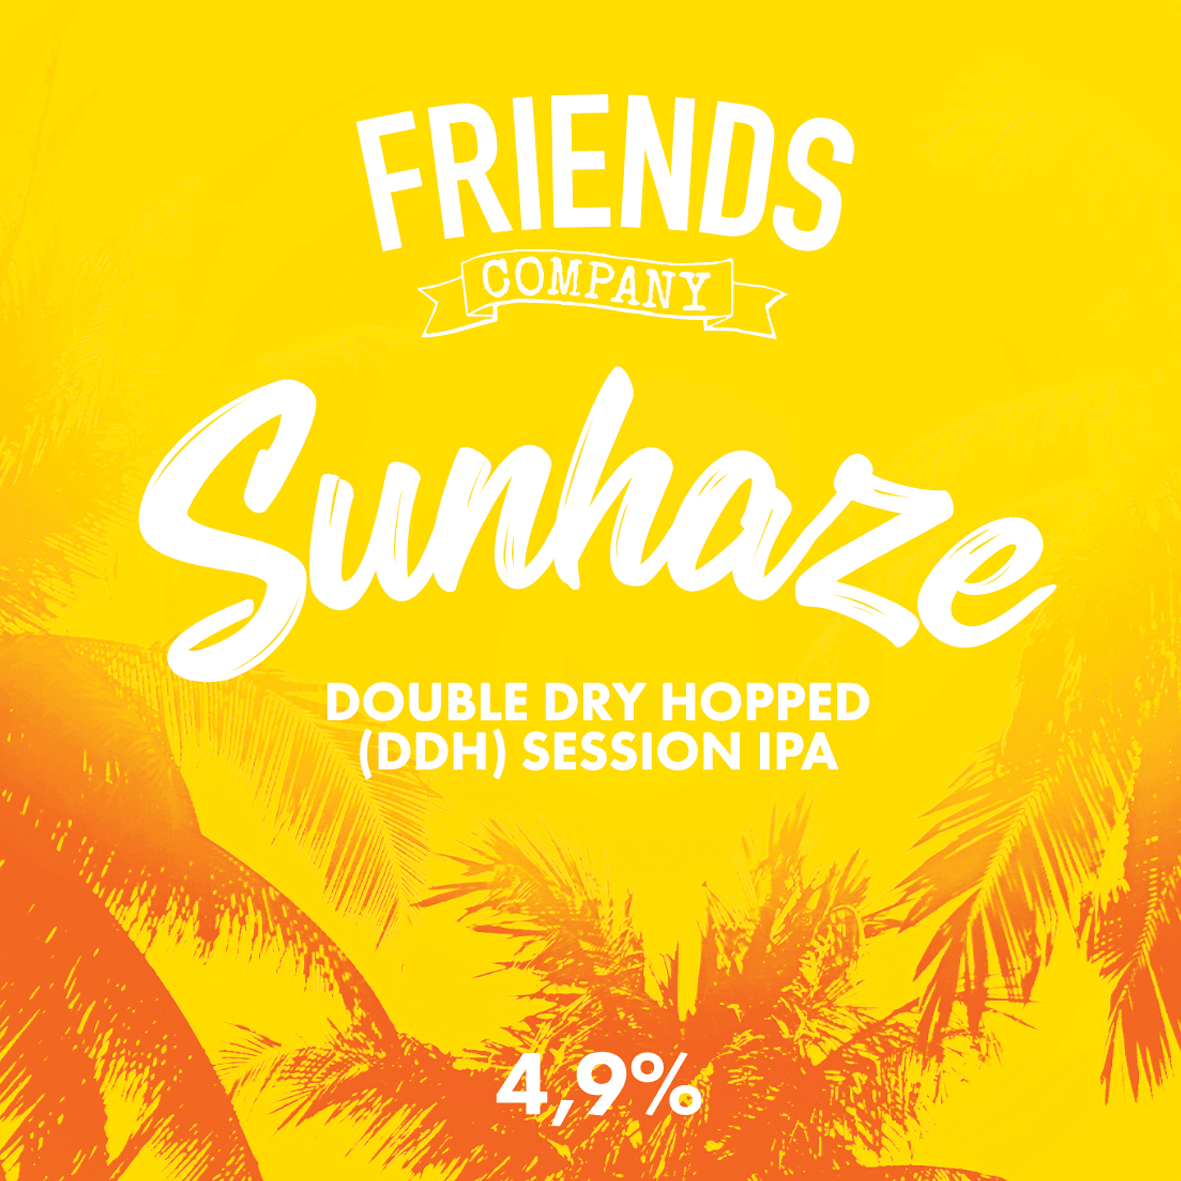 Sunhaze-DDH-Session-IPA-100x100mm-300dpi